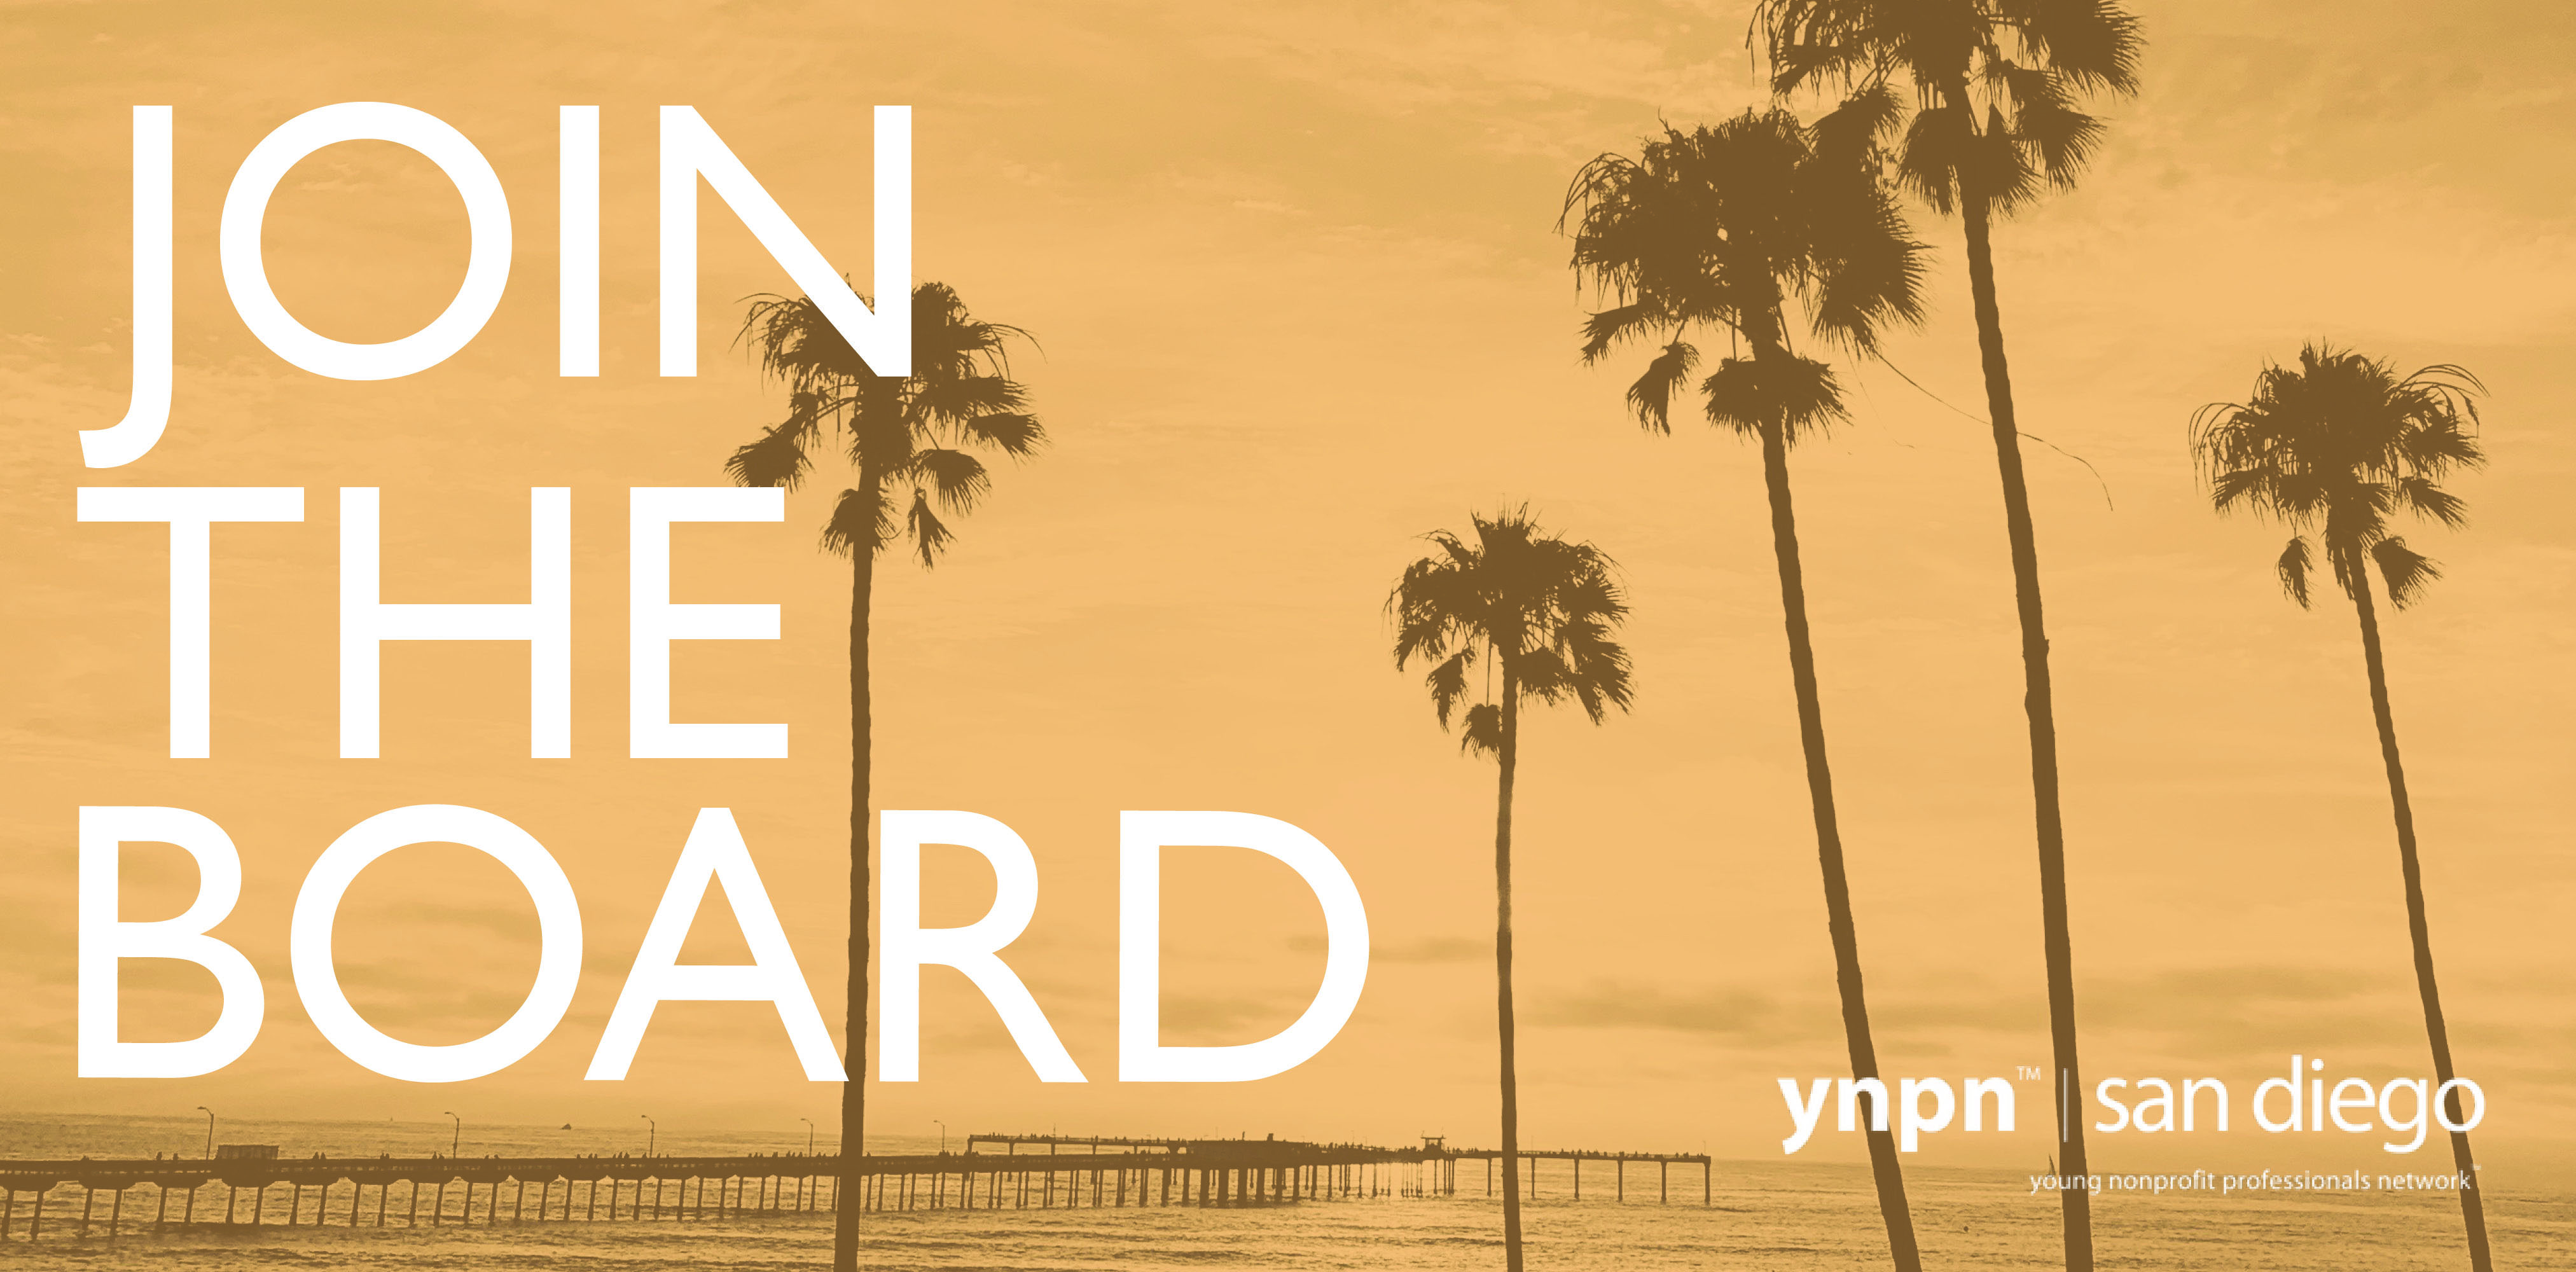 Join the Advisory Board - YNPN San Diego